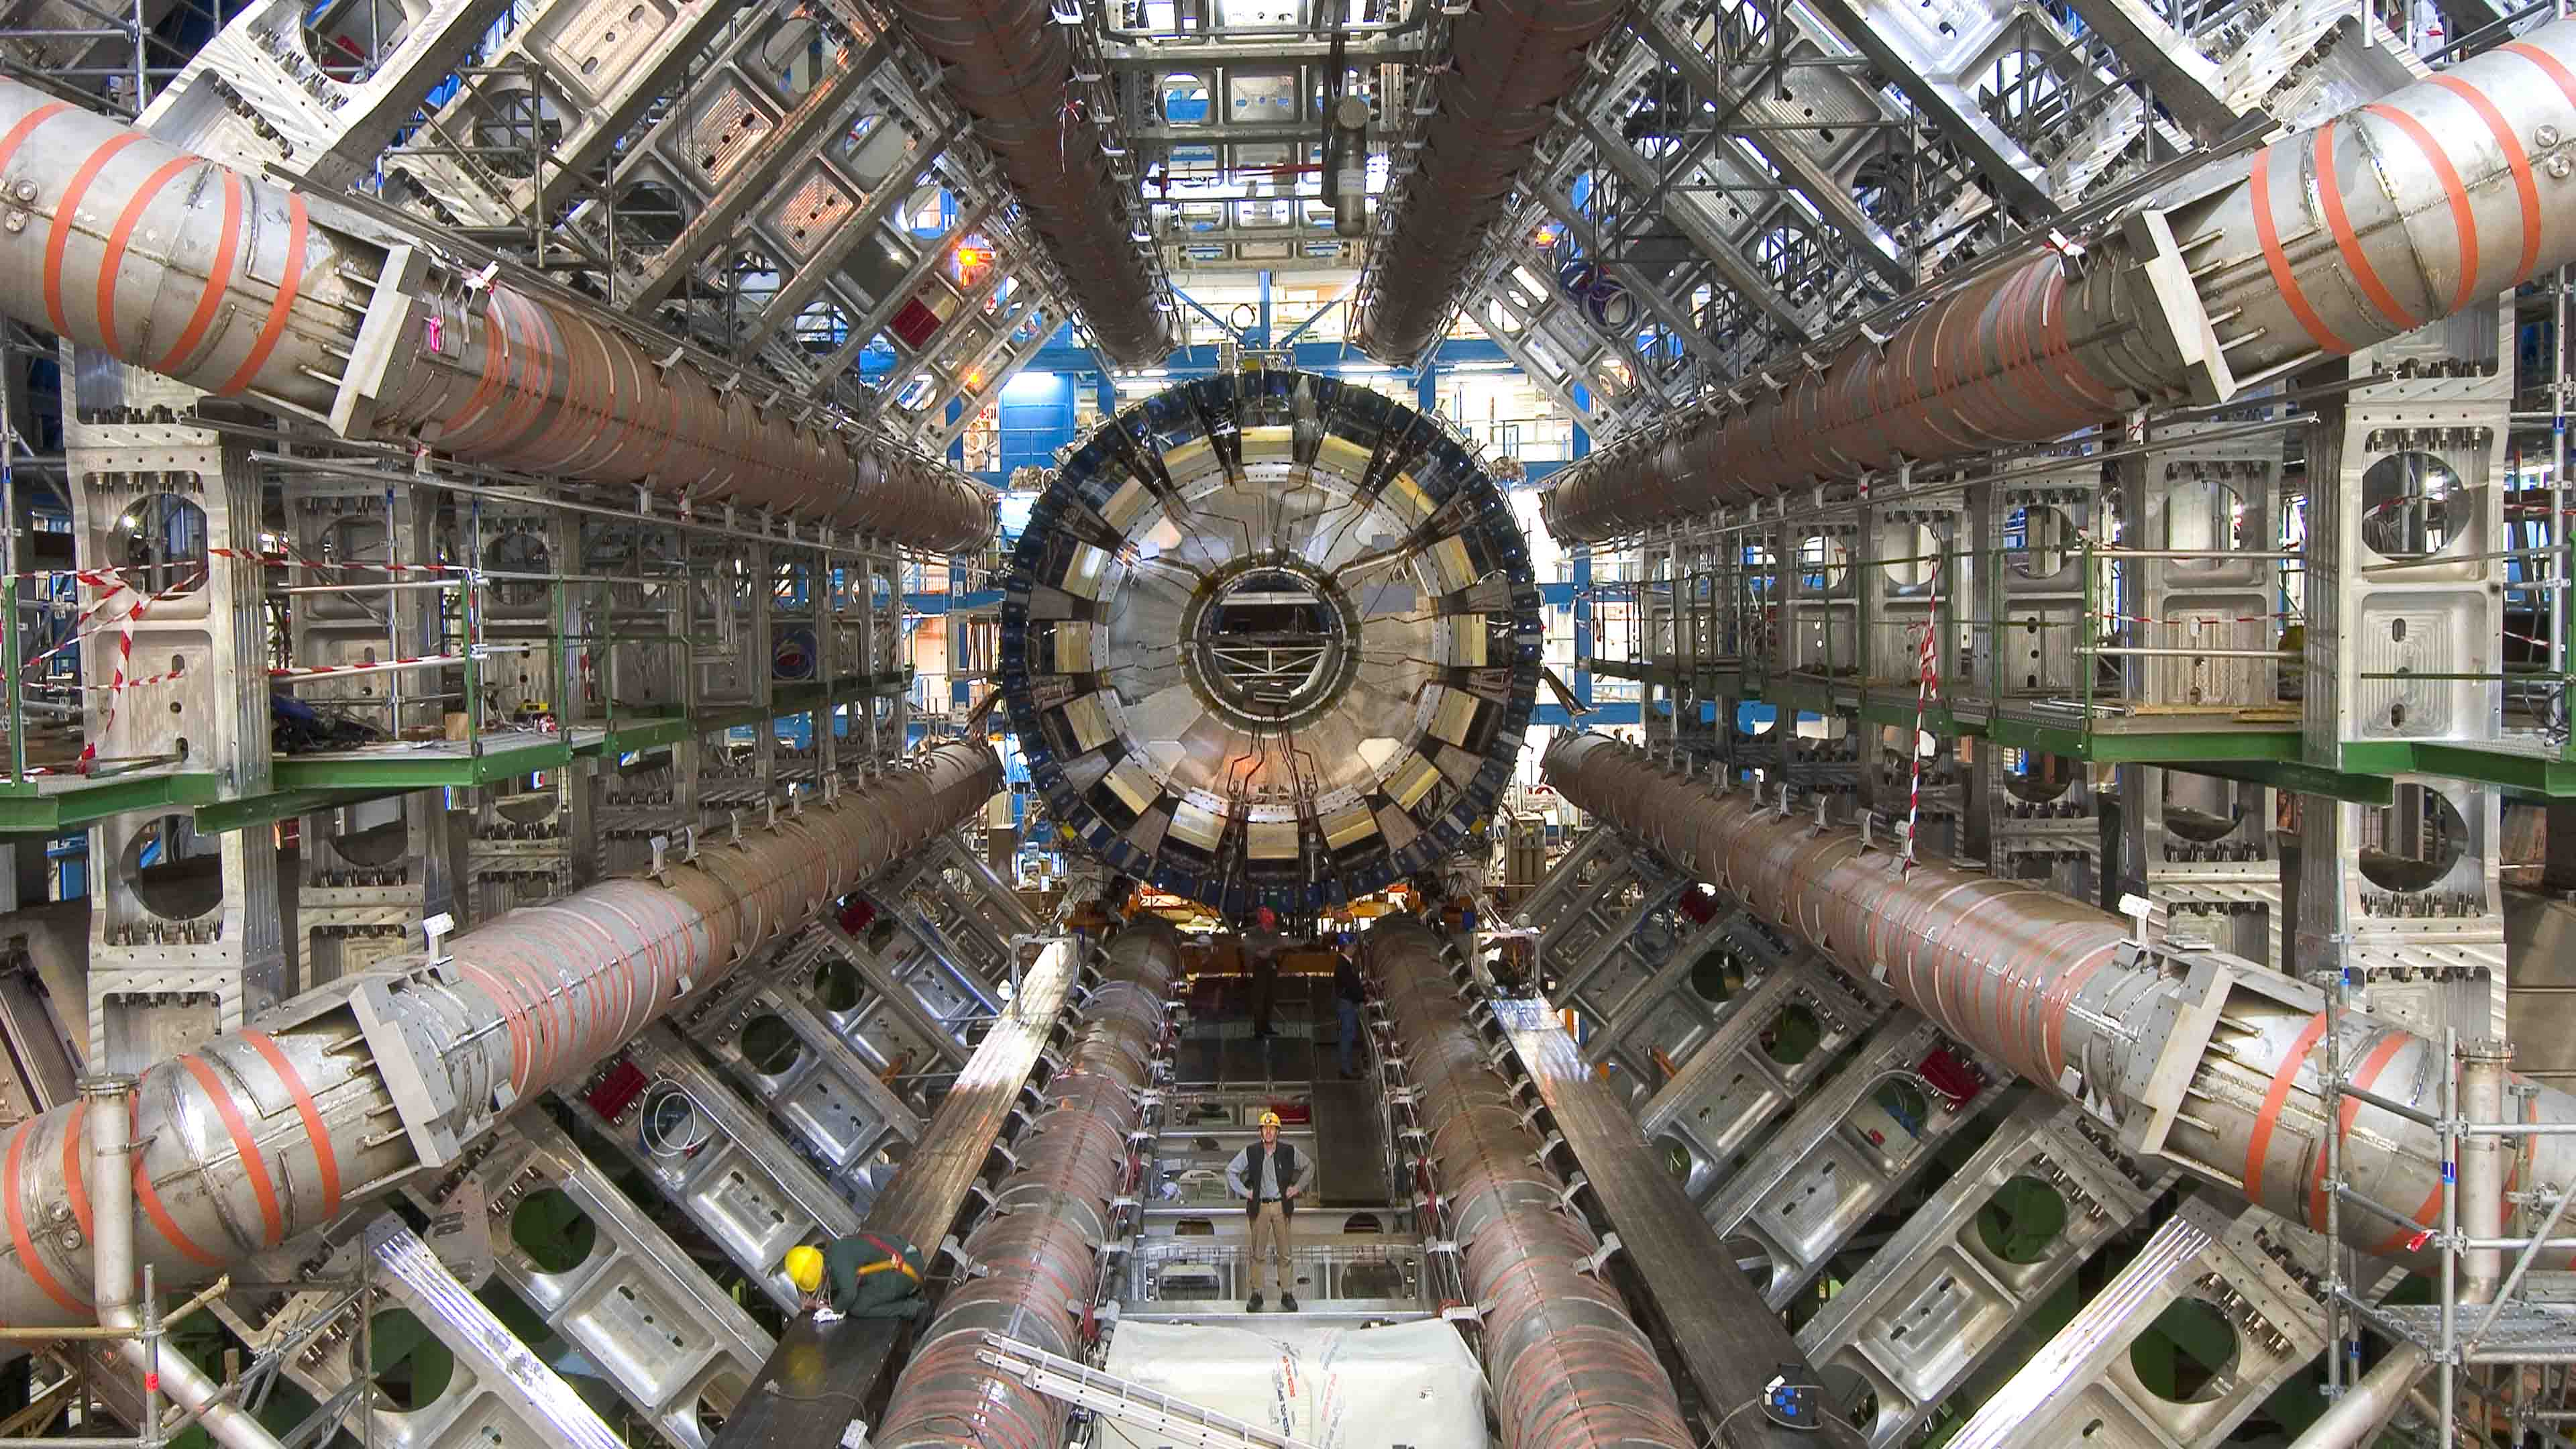 The Cross Section of ATLAS Particle Detector at CERN. The image was taken during the construction of the ATLAS.